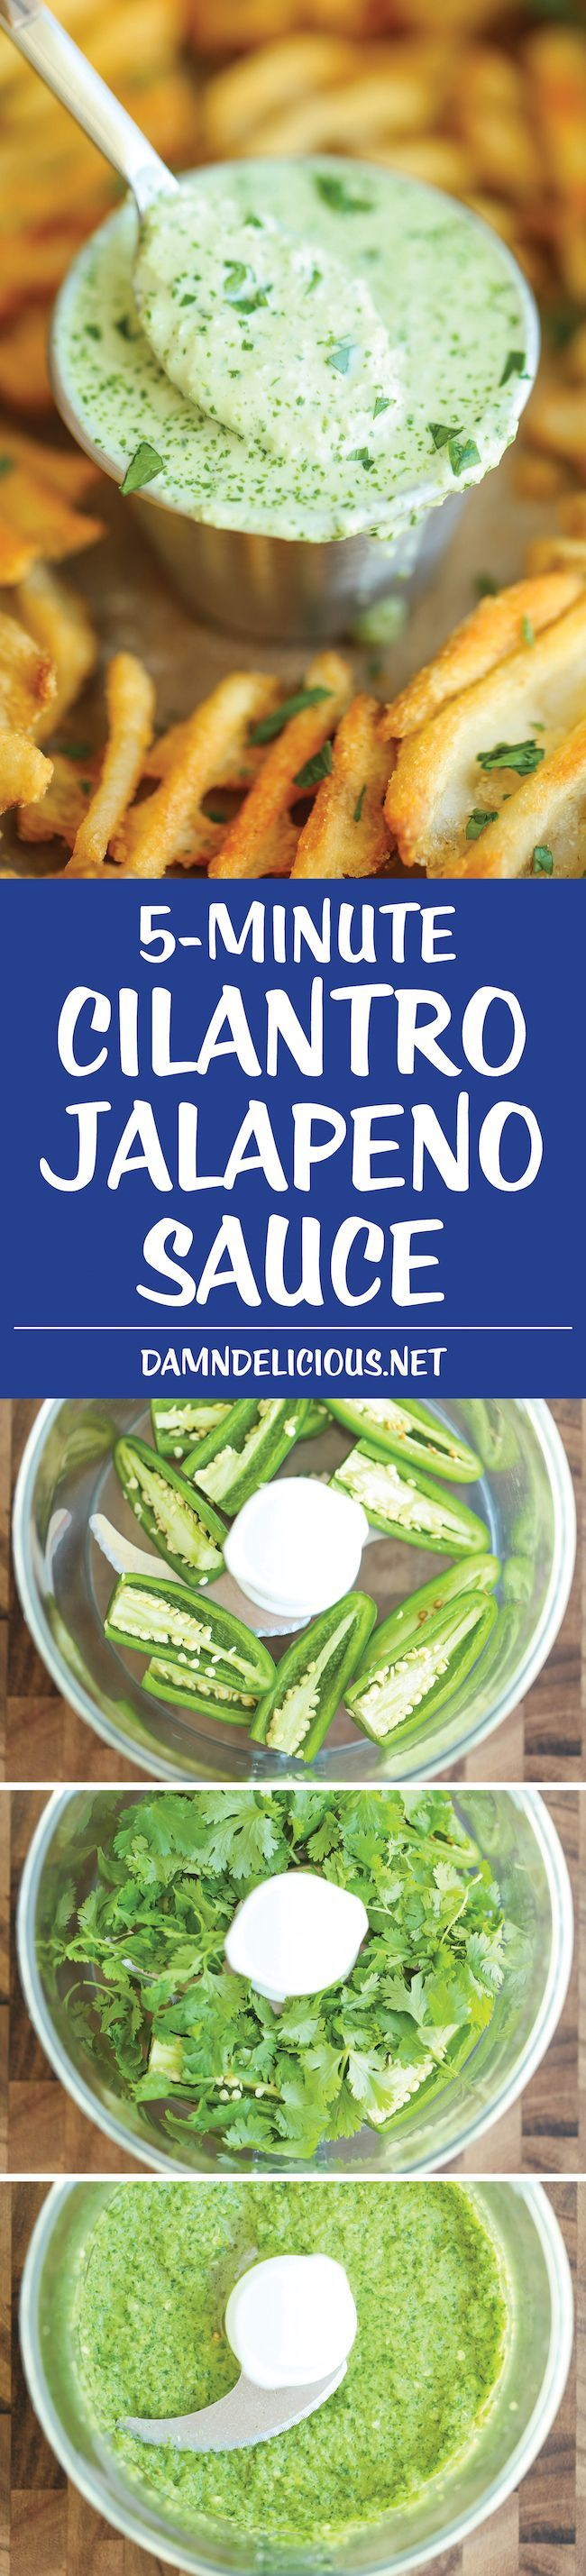 The easiest 5 min sauce ever. And you can use this on anything - from grilled meats to fries and even chips for dipping!